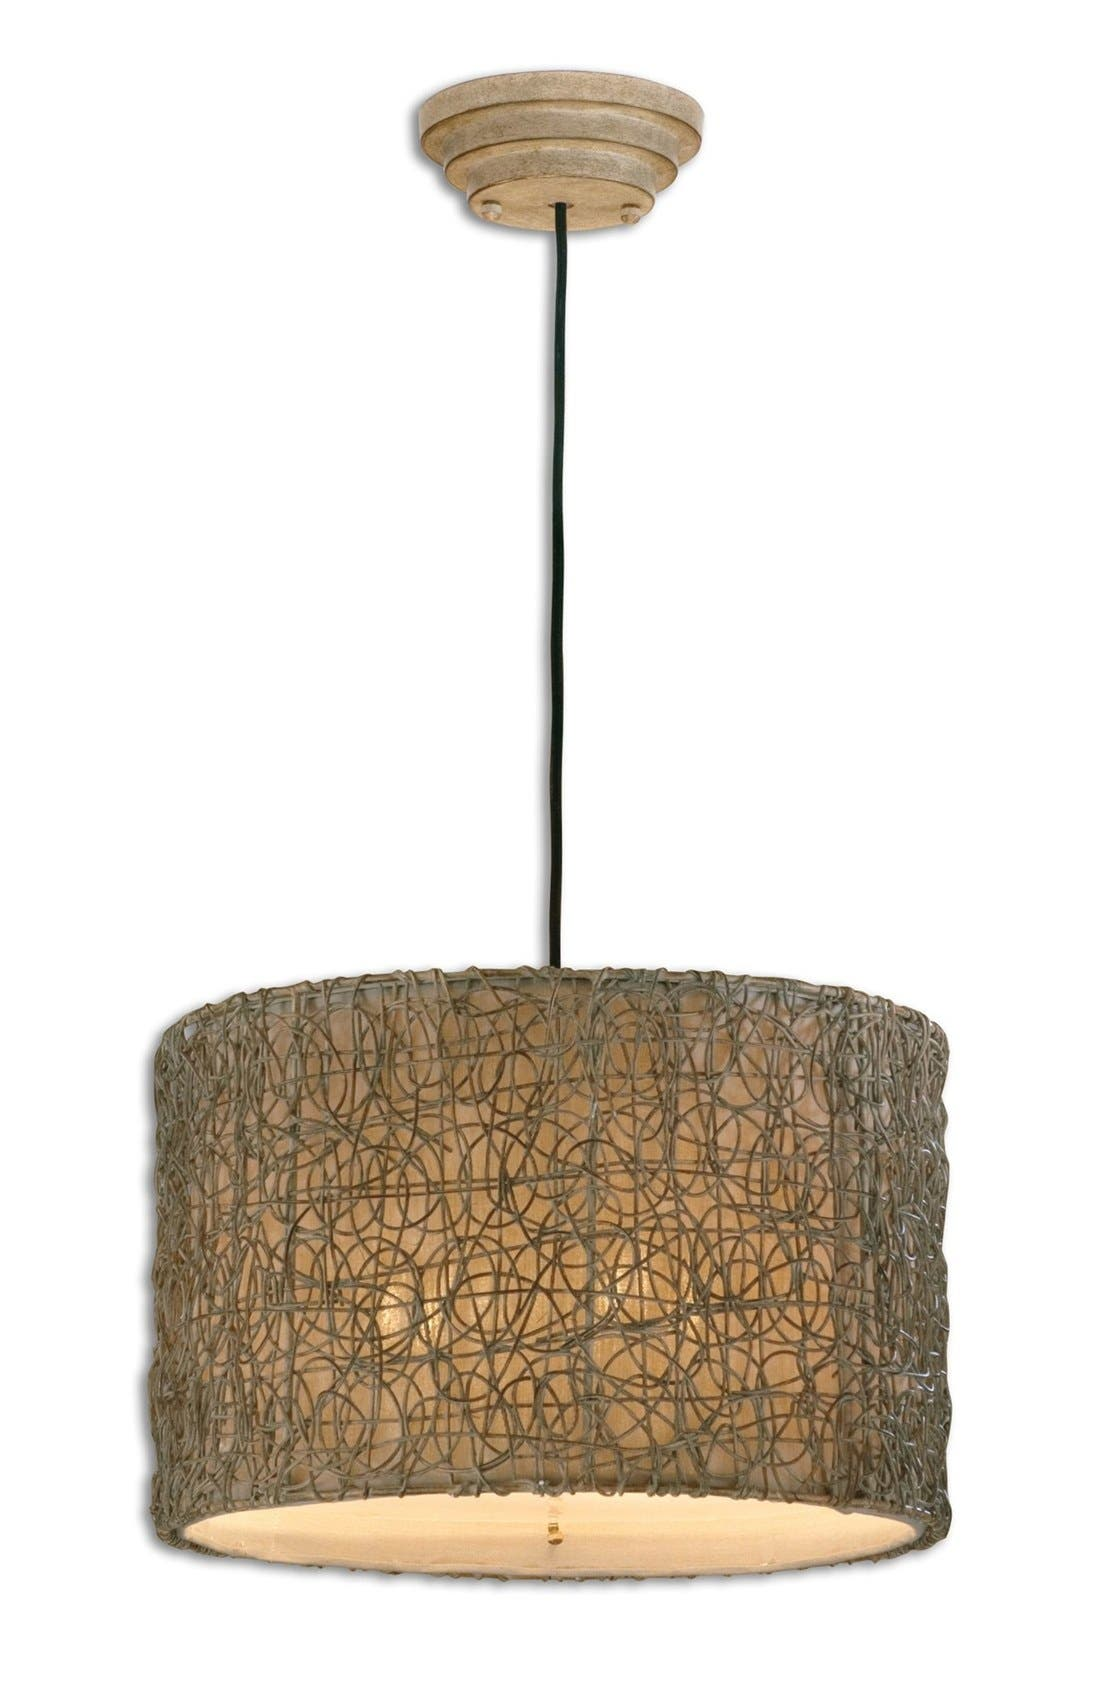 Knotted Rattan Pendant Light,                         Main,                         color, 100